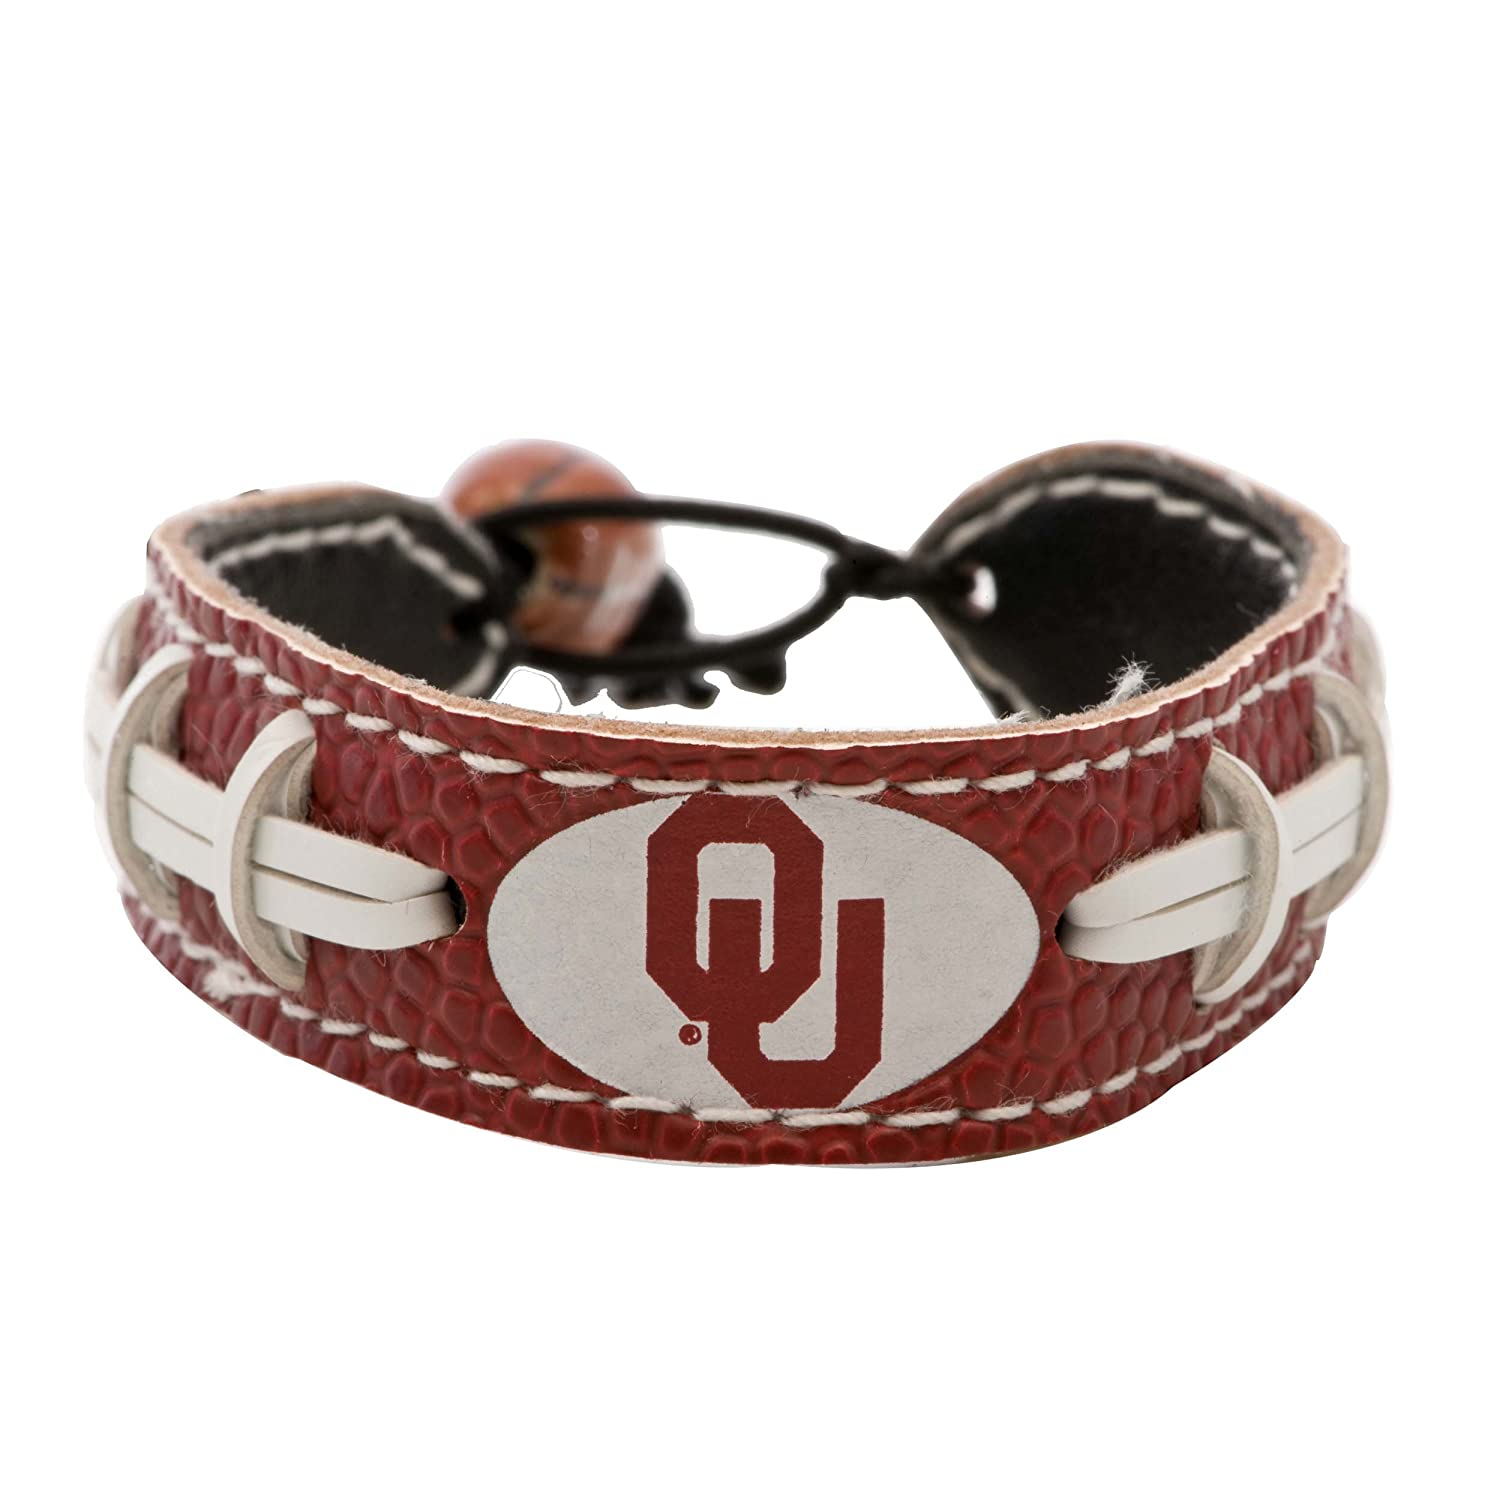 com ncaa color outdoors dp amazon gamewear bracelet sports leather football team sooners oklahoma bracelets fan